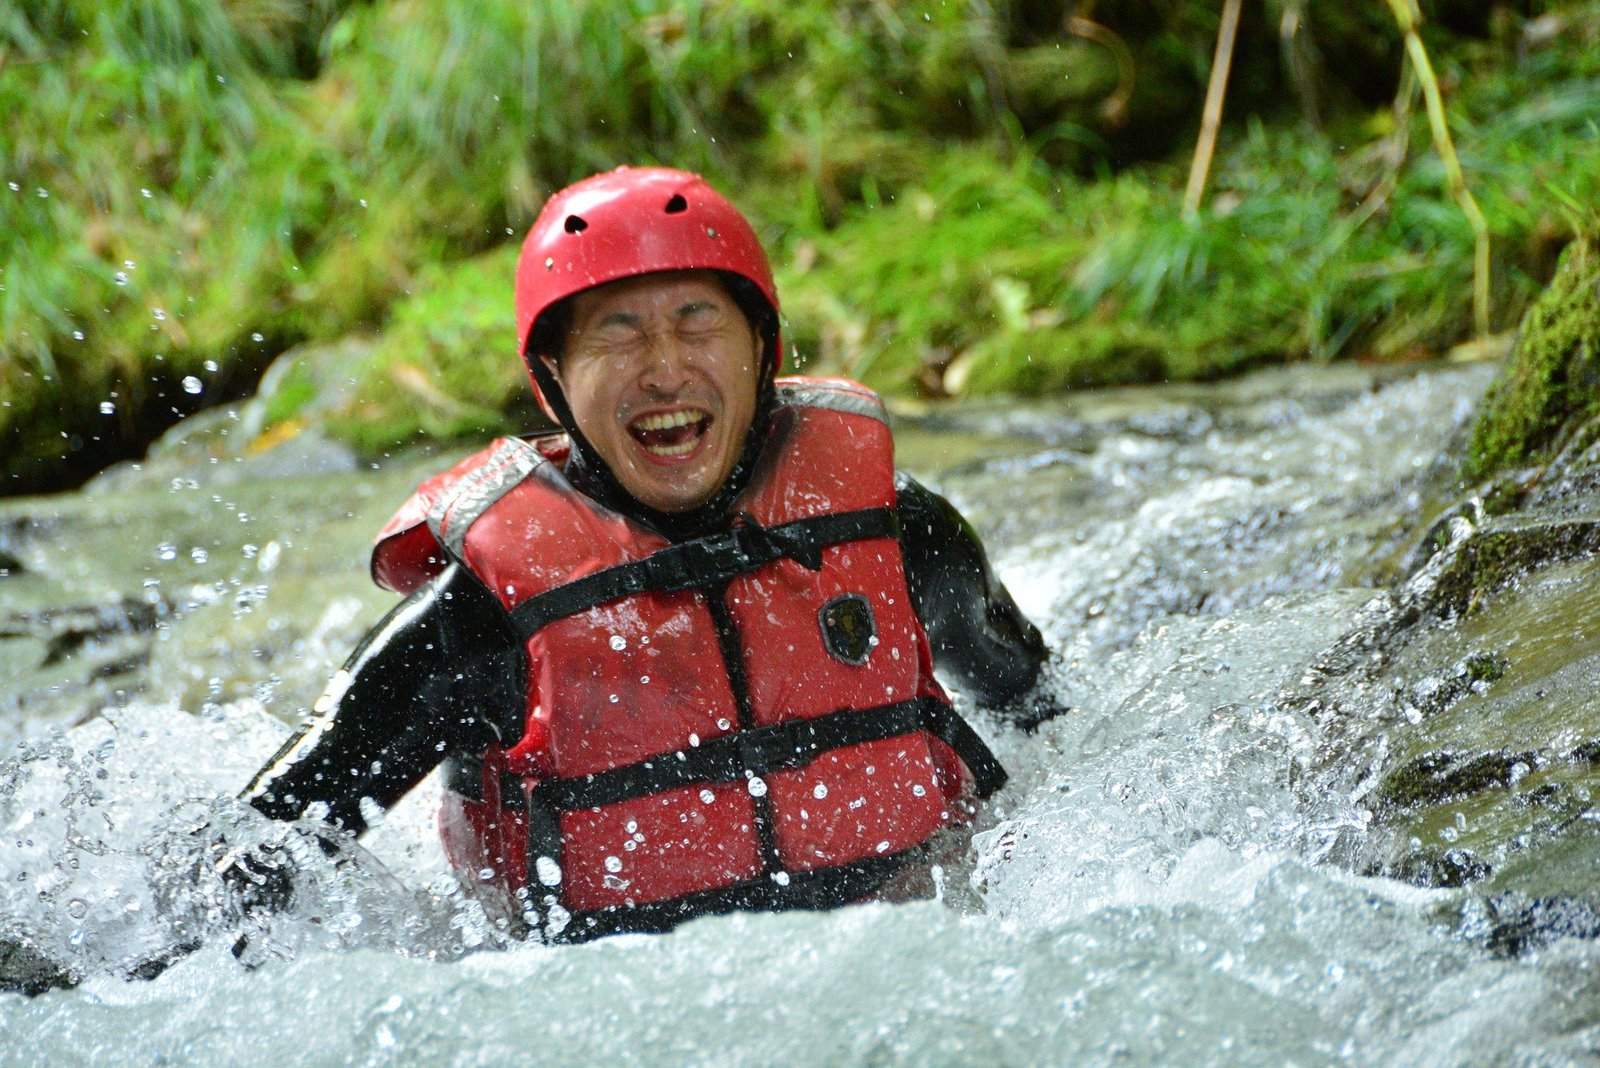 A man playing happily in the Shiribetsu river, Hokkaido